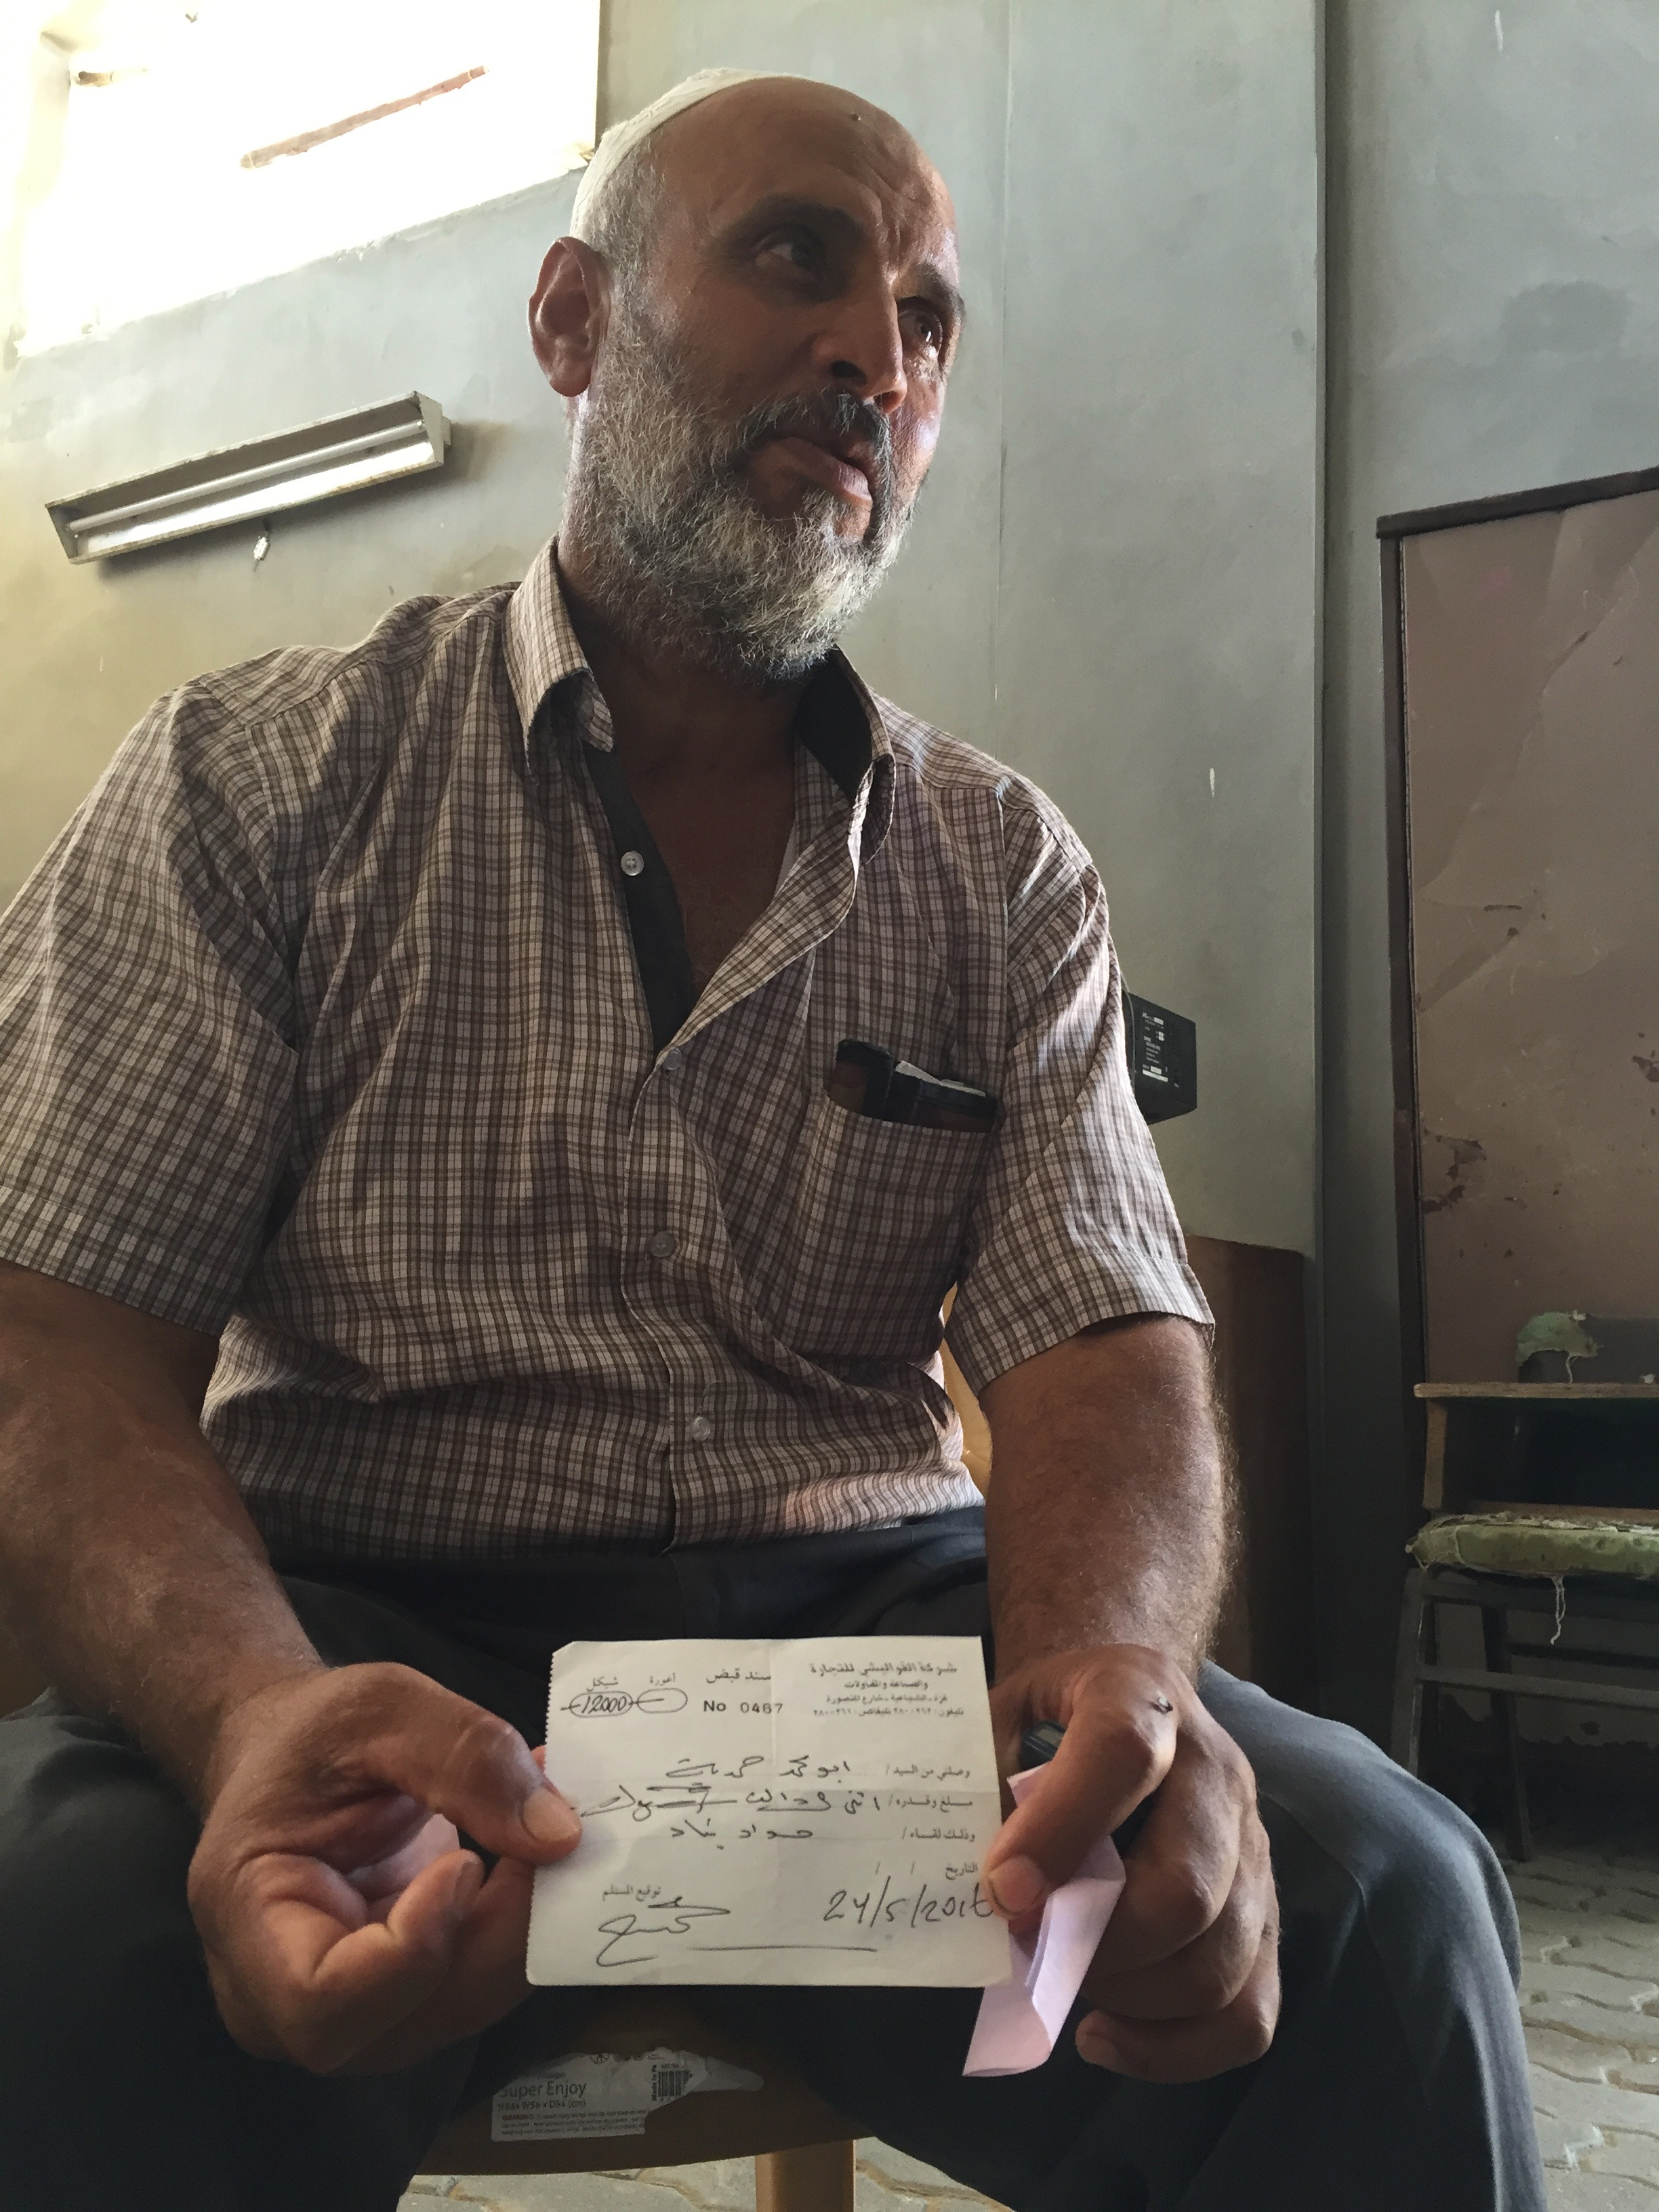 SHUJAYA | Moussa's entire four-storey home was destroyed during the 2014 Gaza war. He shows us a receipt proving he paid the money acquired from a Kuwaiti reconstruction fund to a cement provider in Gaza, but he says he is still waiting for the delivery to rebuild his home. July 10, 2016.